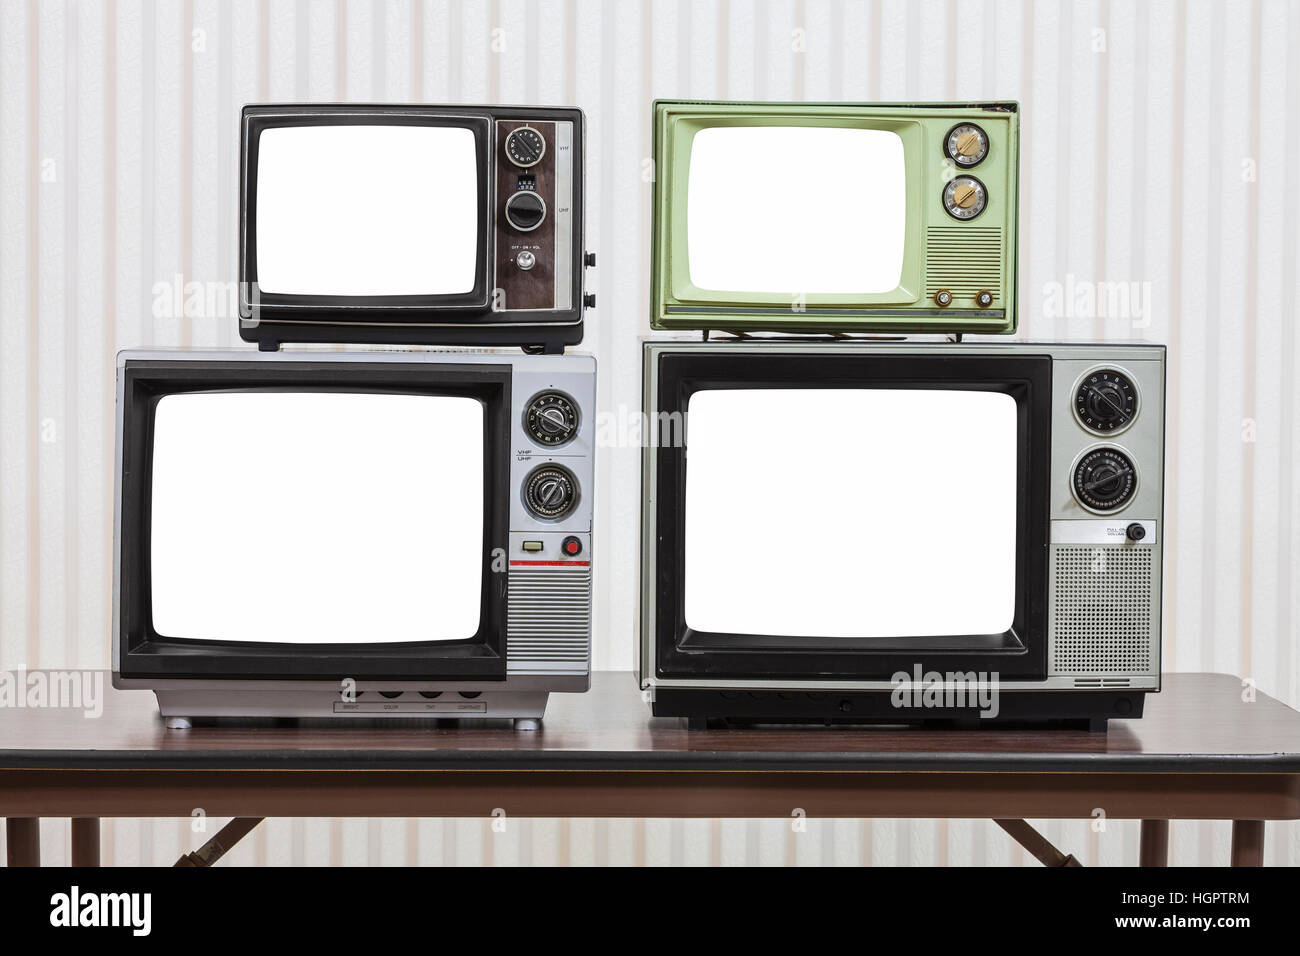 retro tv cut out stock photos retro tv cut out stock images alamy